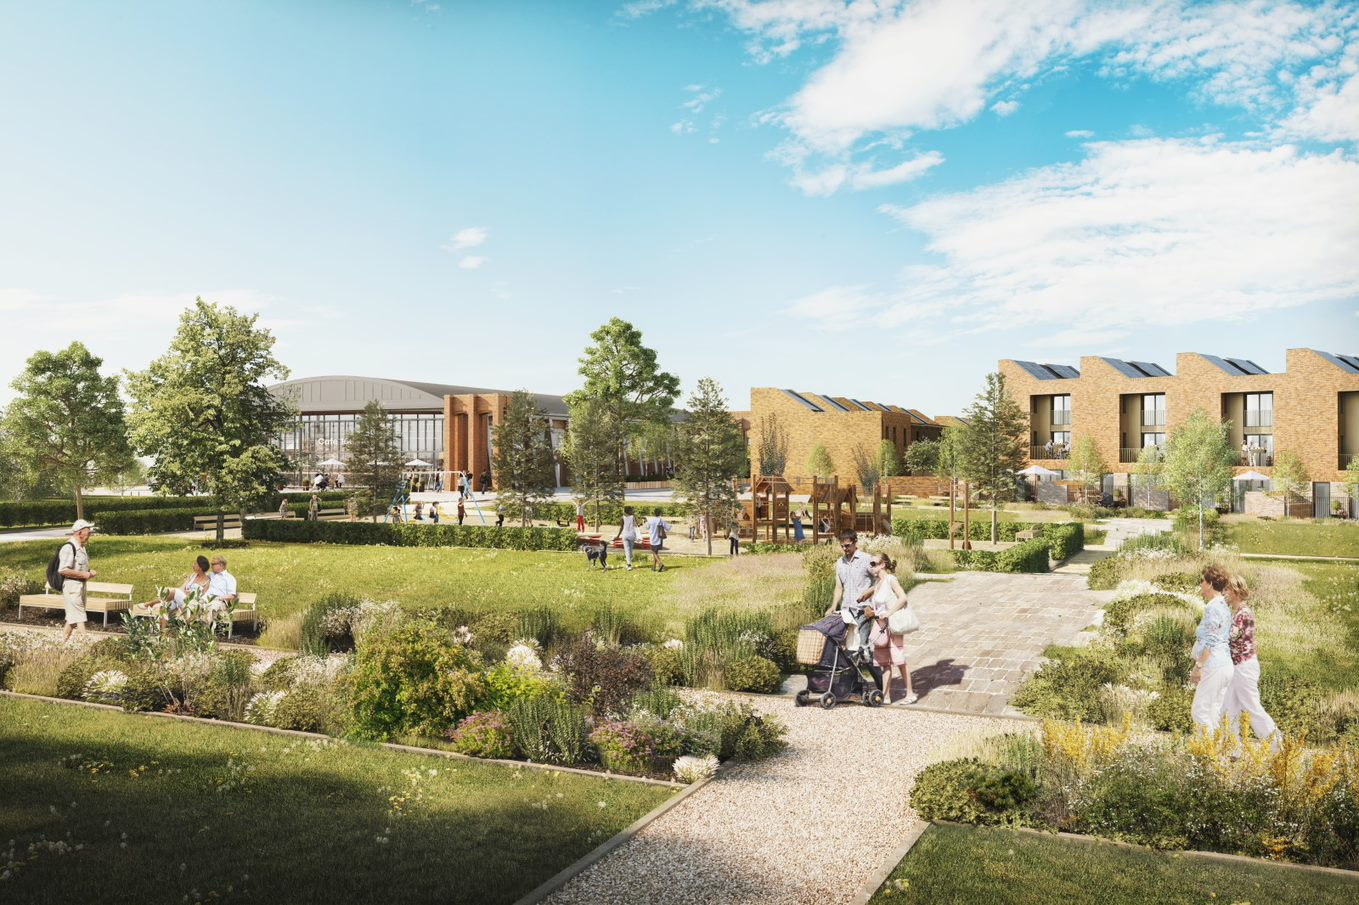 Good news for Filton as new homes at Brabazon reach their full height